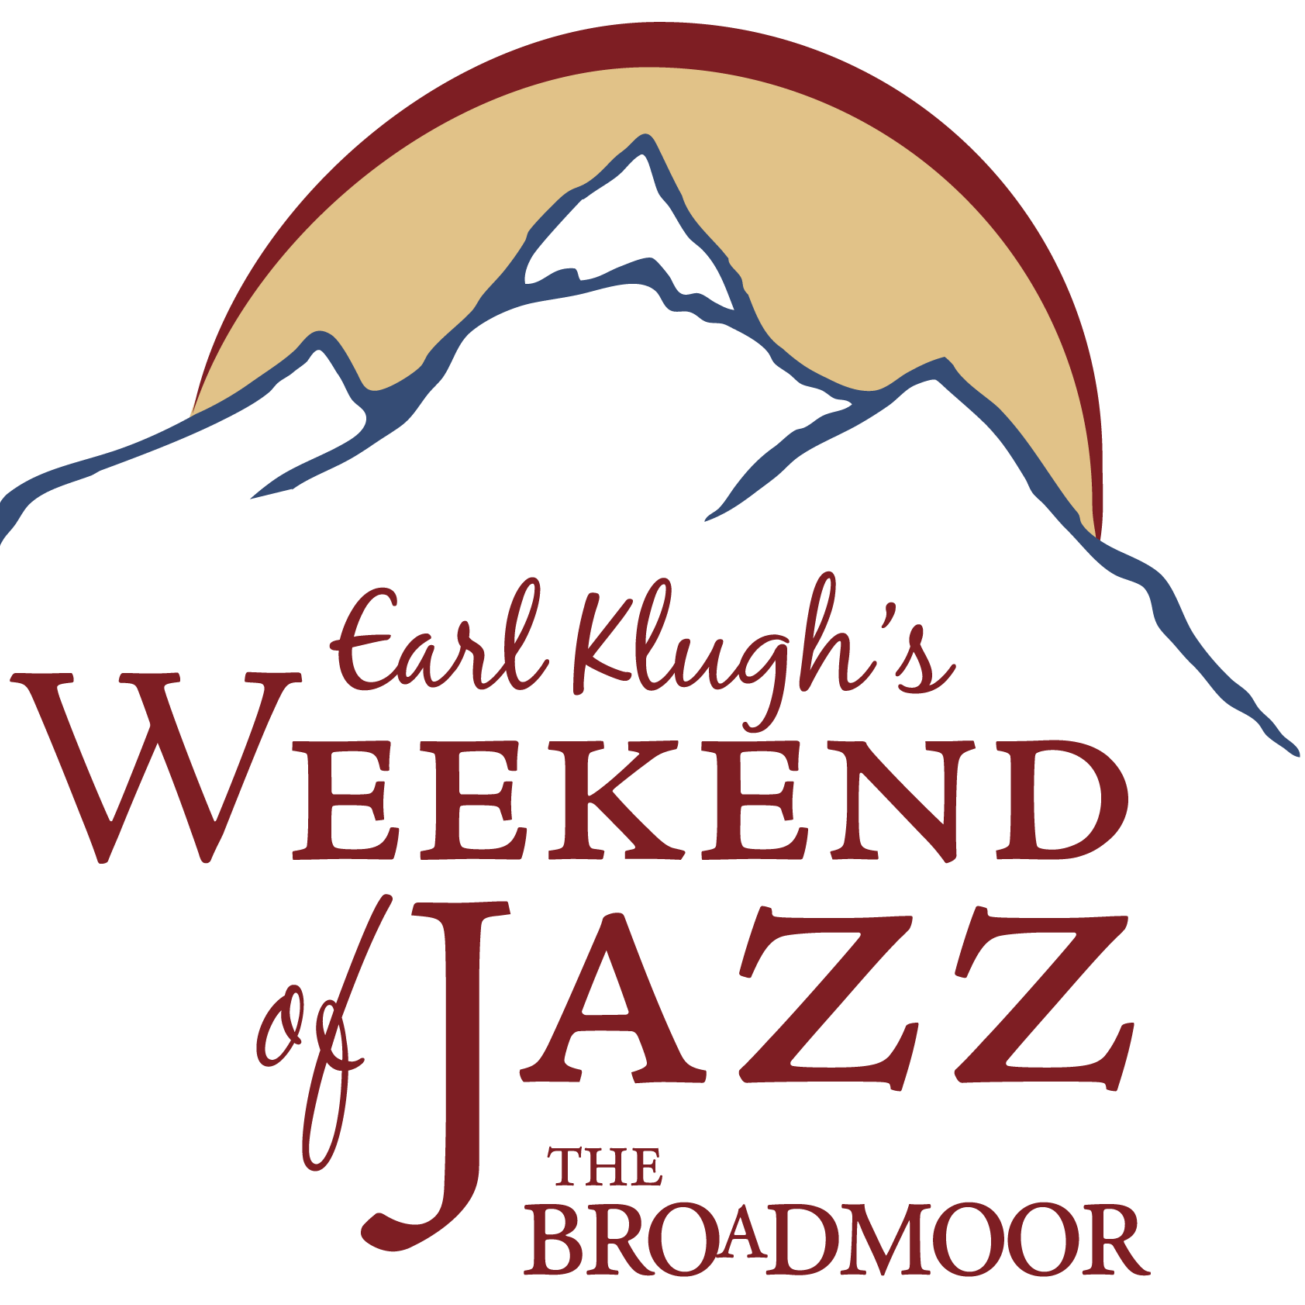 Earl Klugh's Weekend of Jazz at The Broadmoor 2019